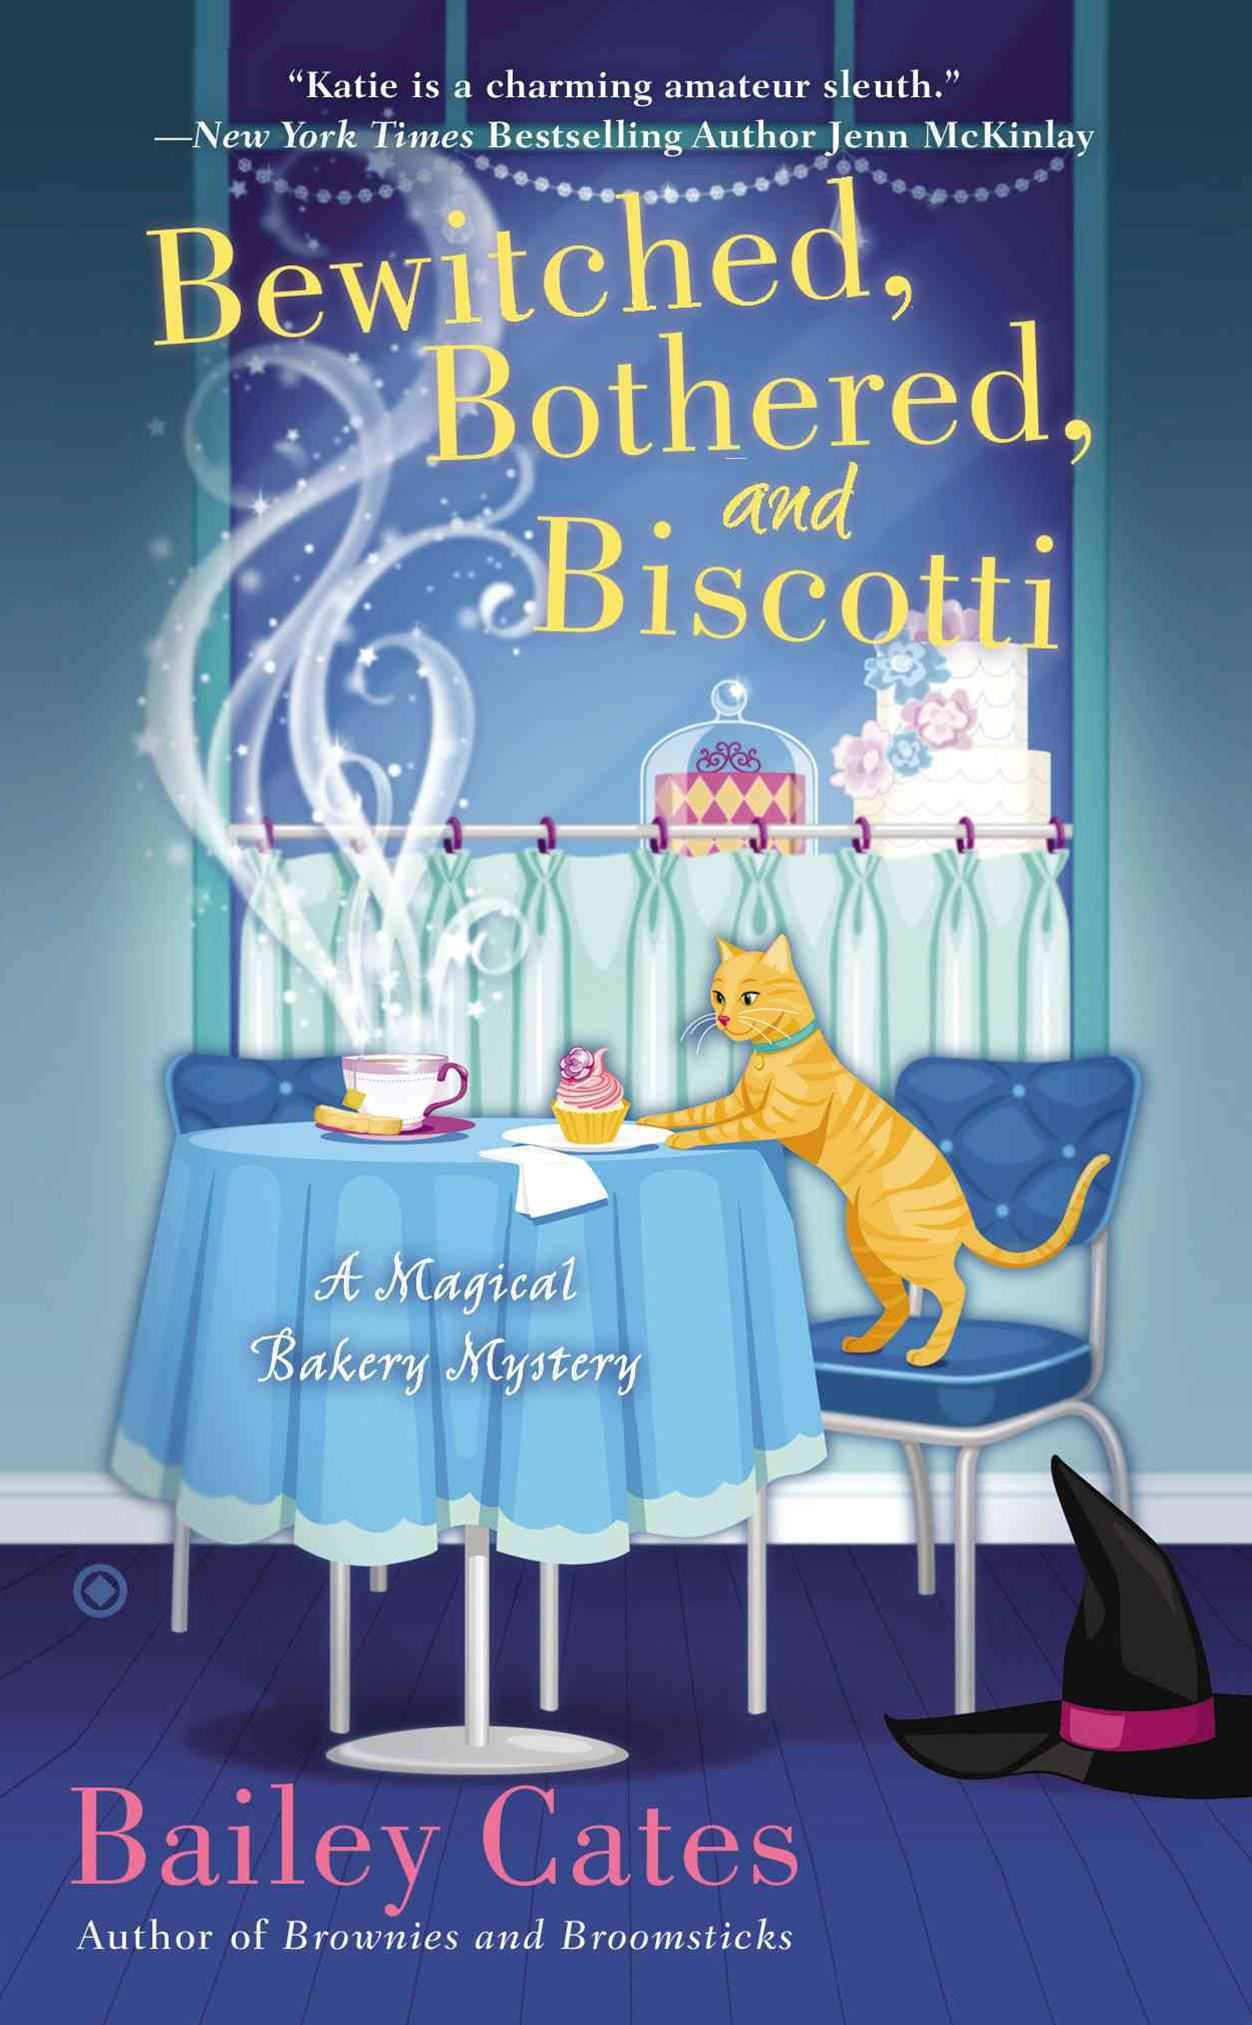 Bewitched, Bothered, And Biscotti: A Magical Bakery MysteryBook 2